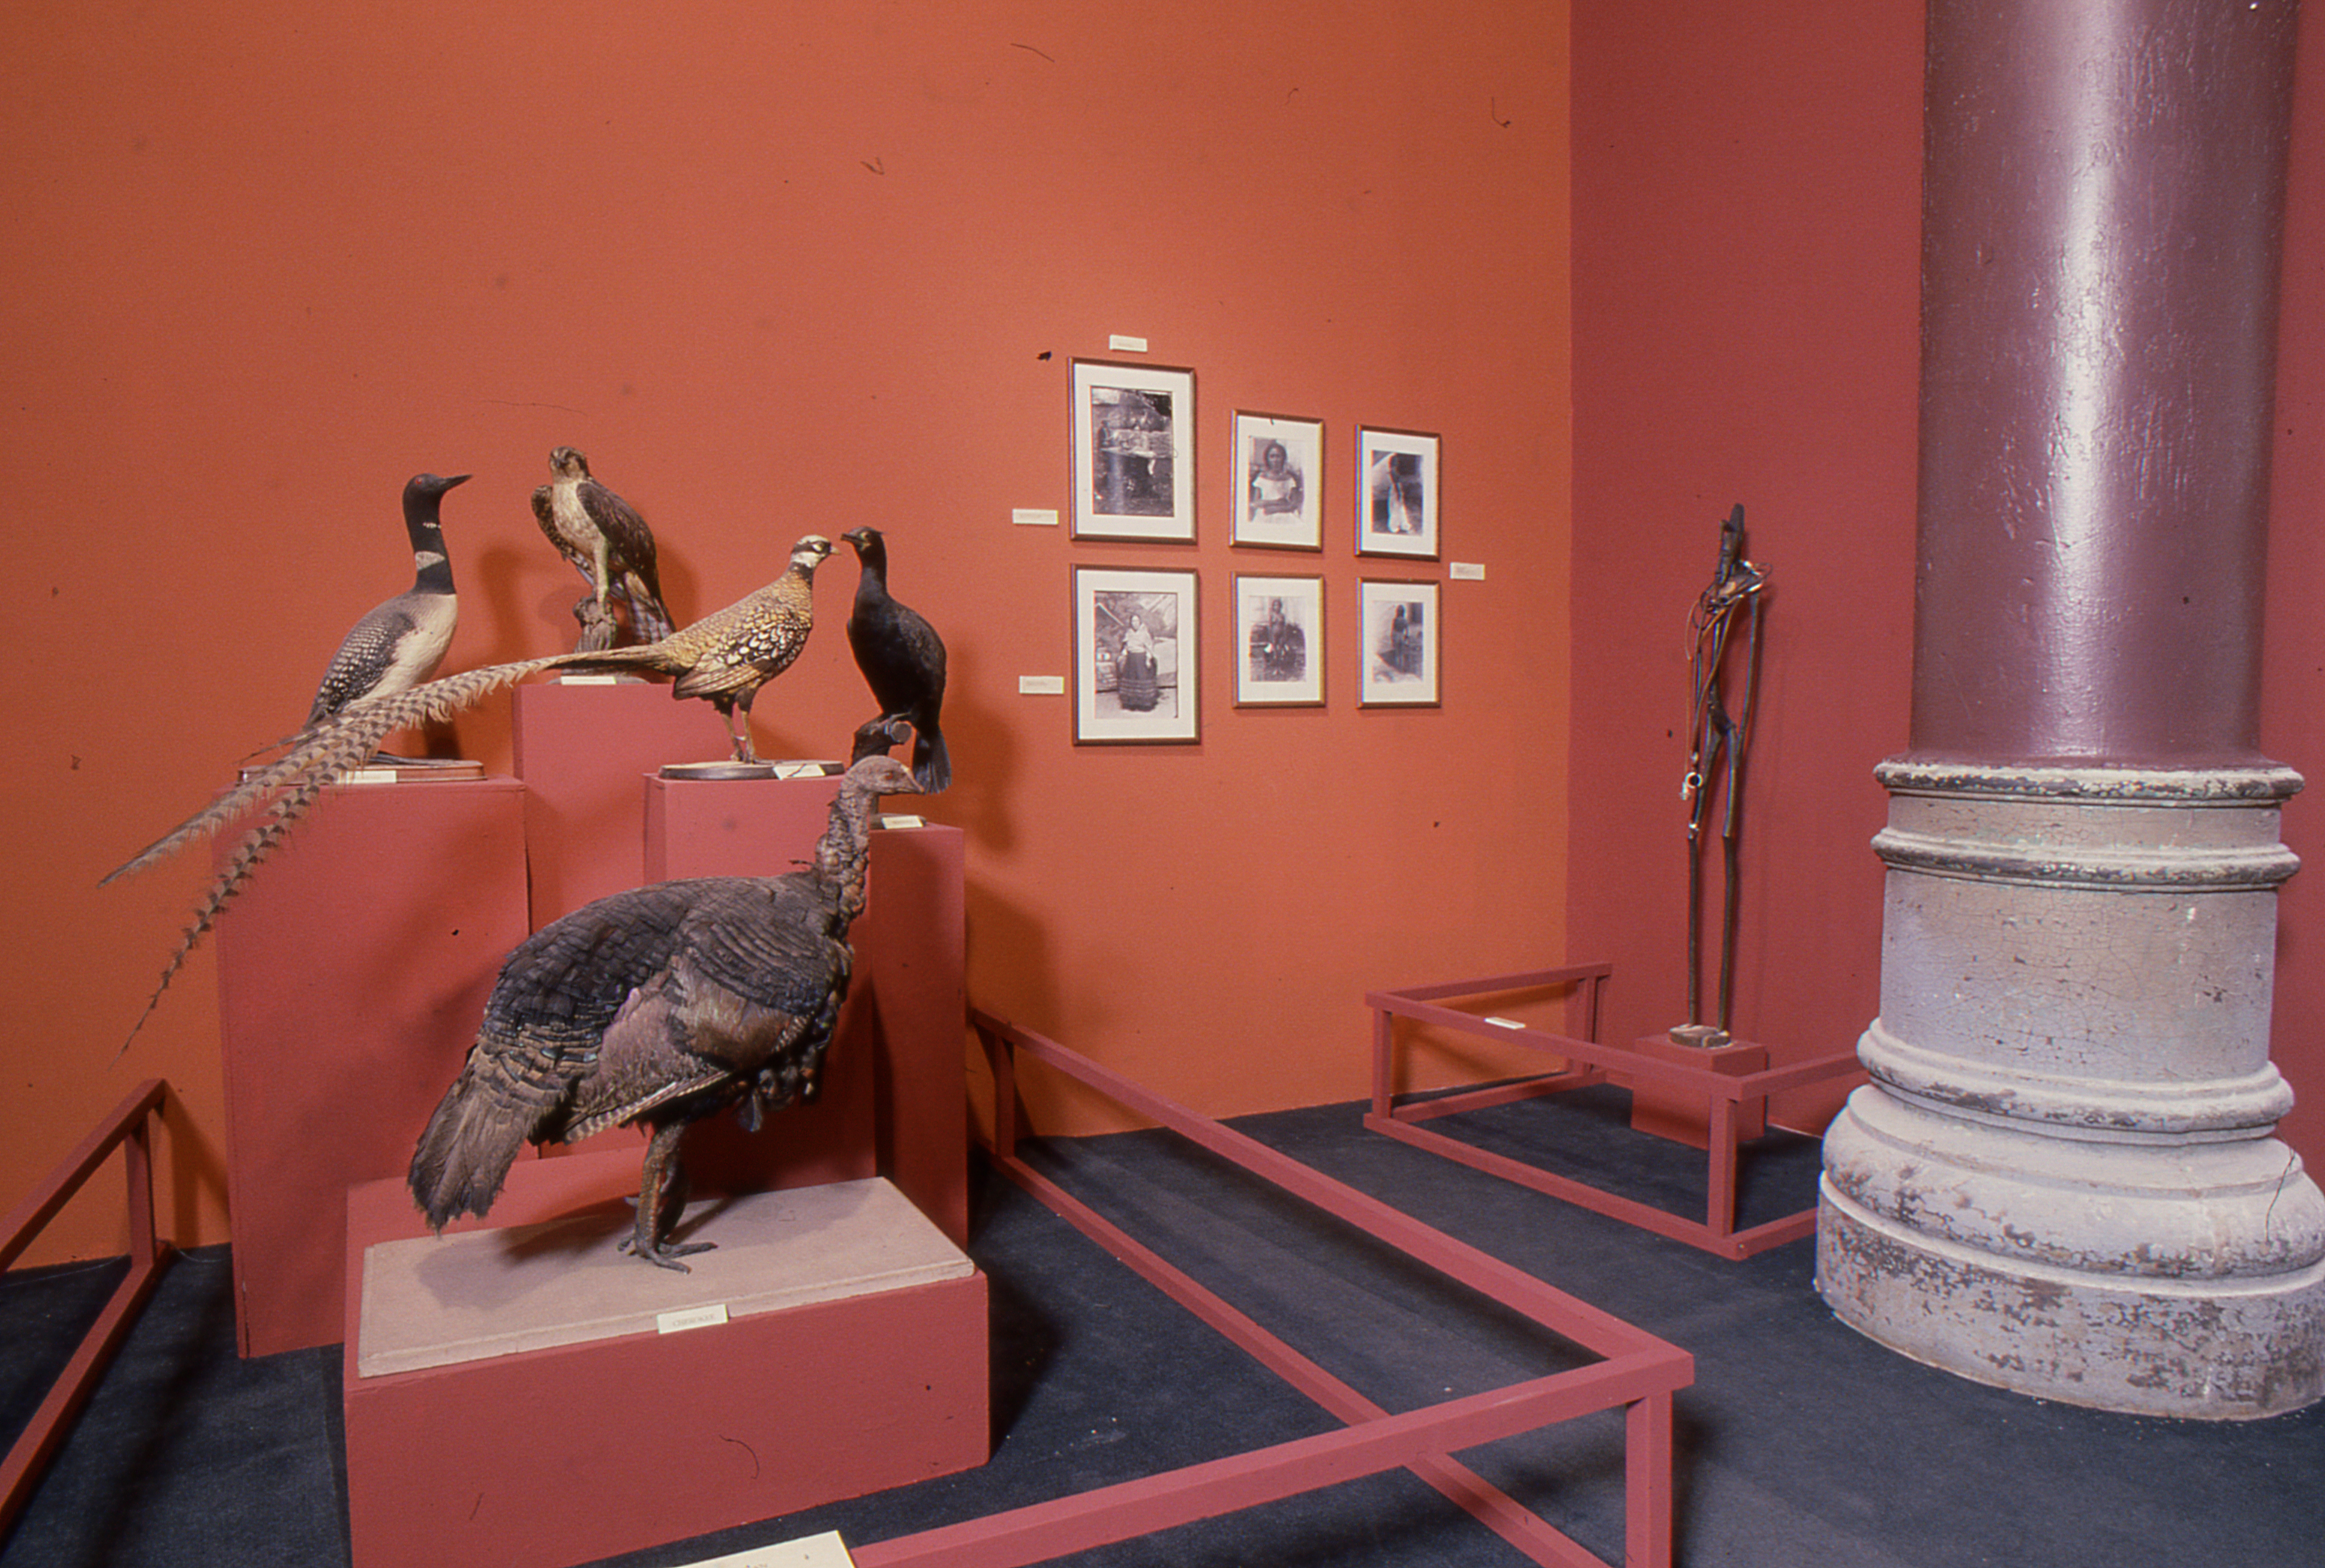 Installation shot of Fred Wilson, 'The Other Museum,' at White Columns, May 18-June 12, 1990. Image courtesy of White Columns.